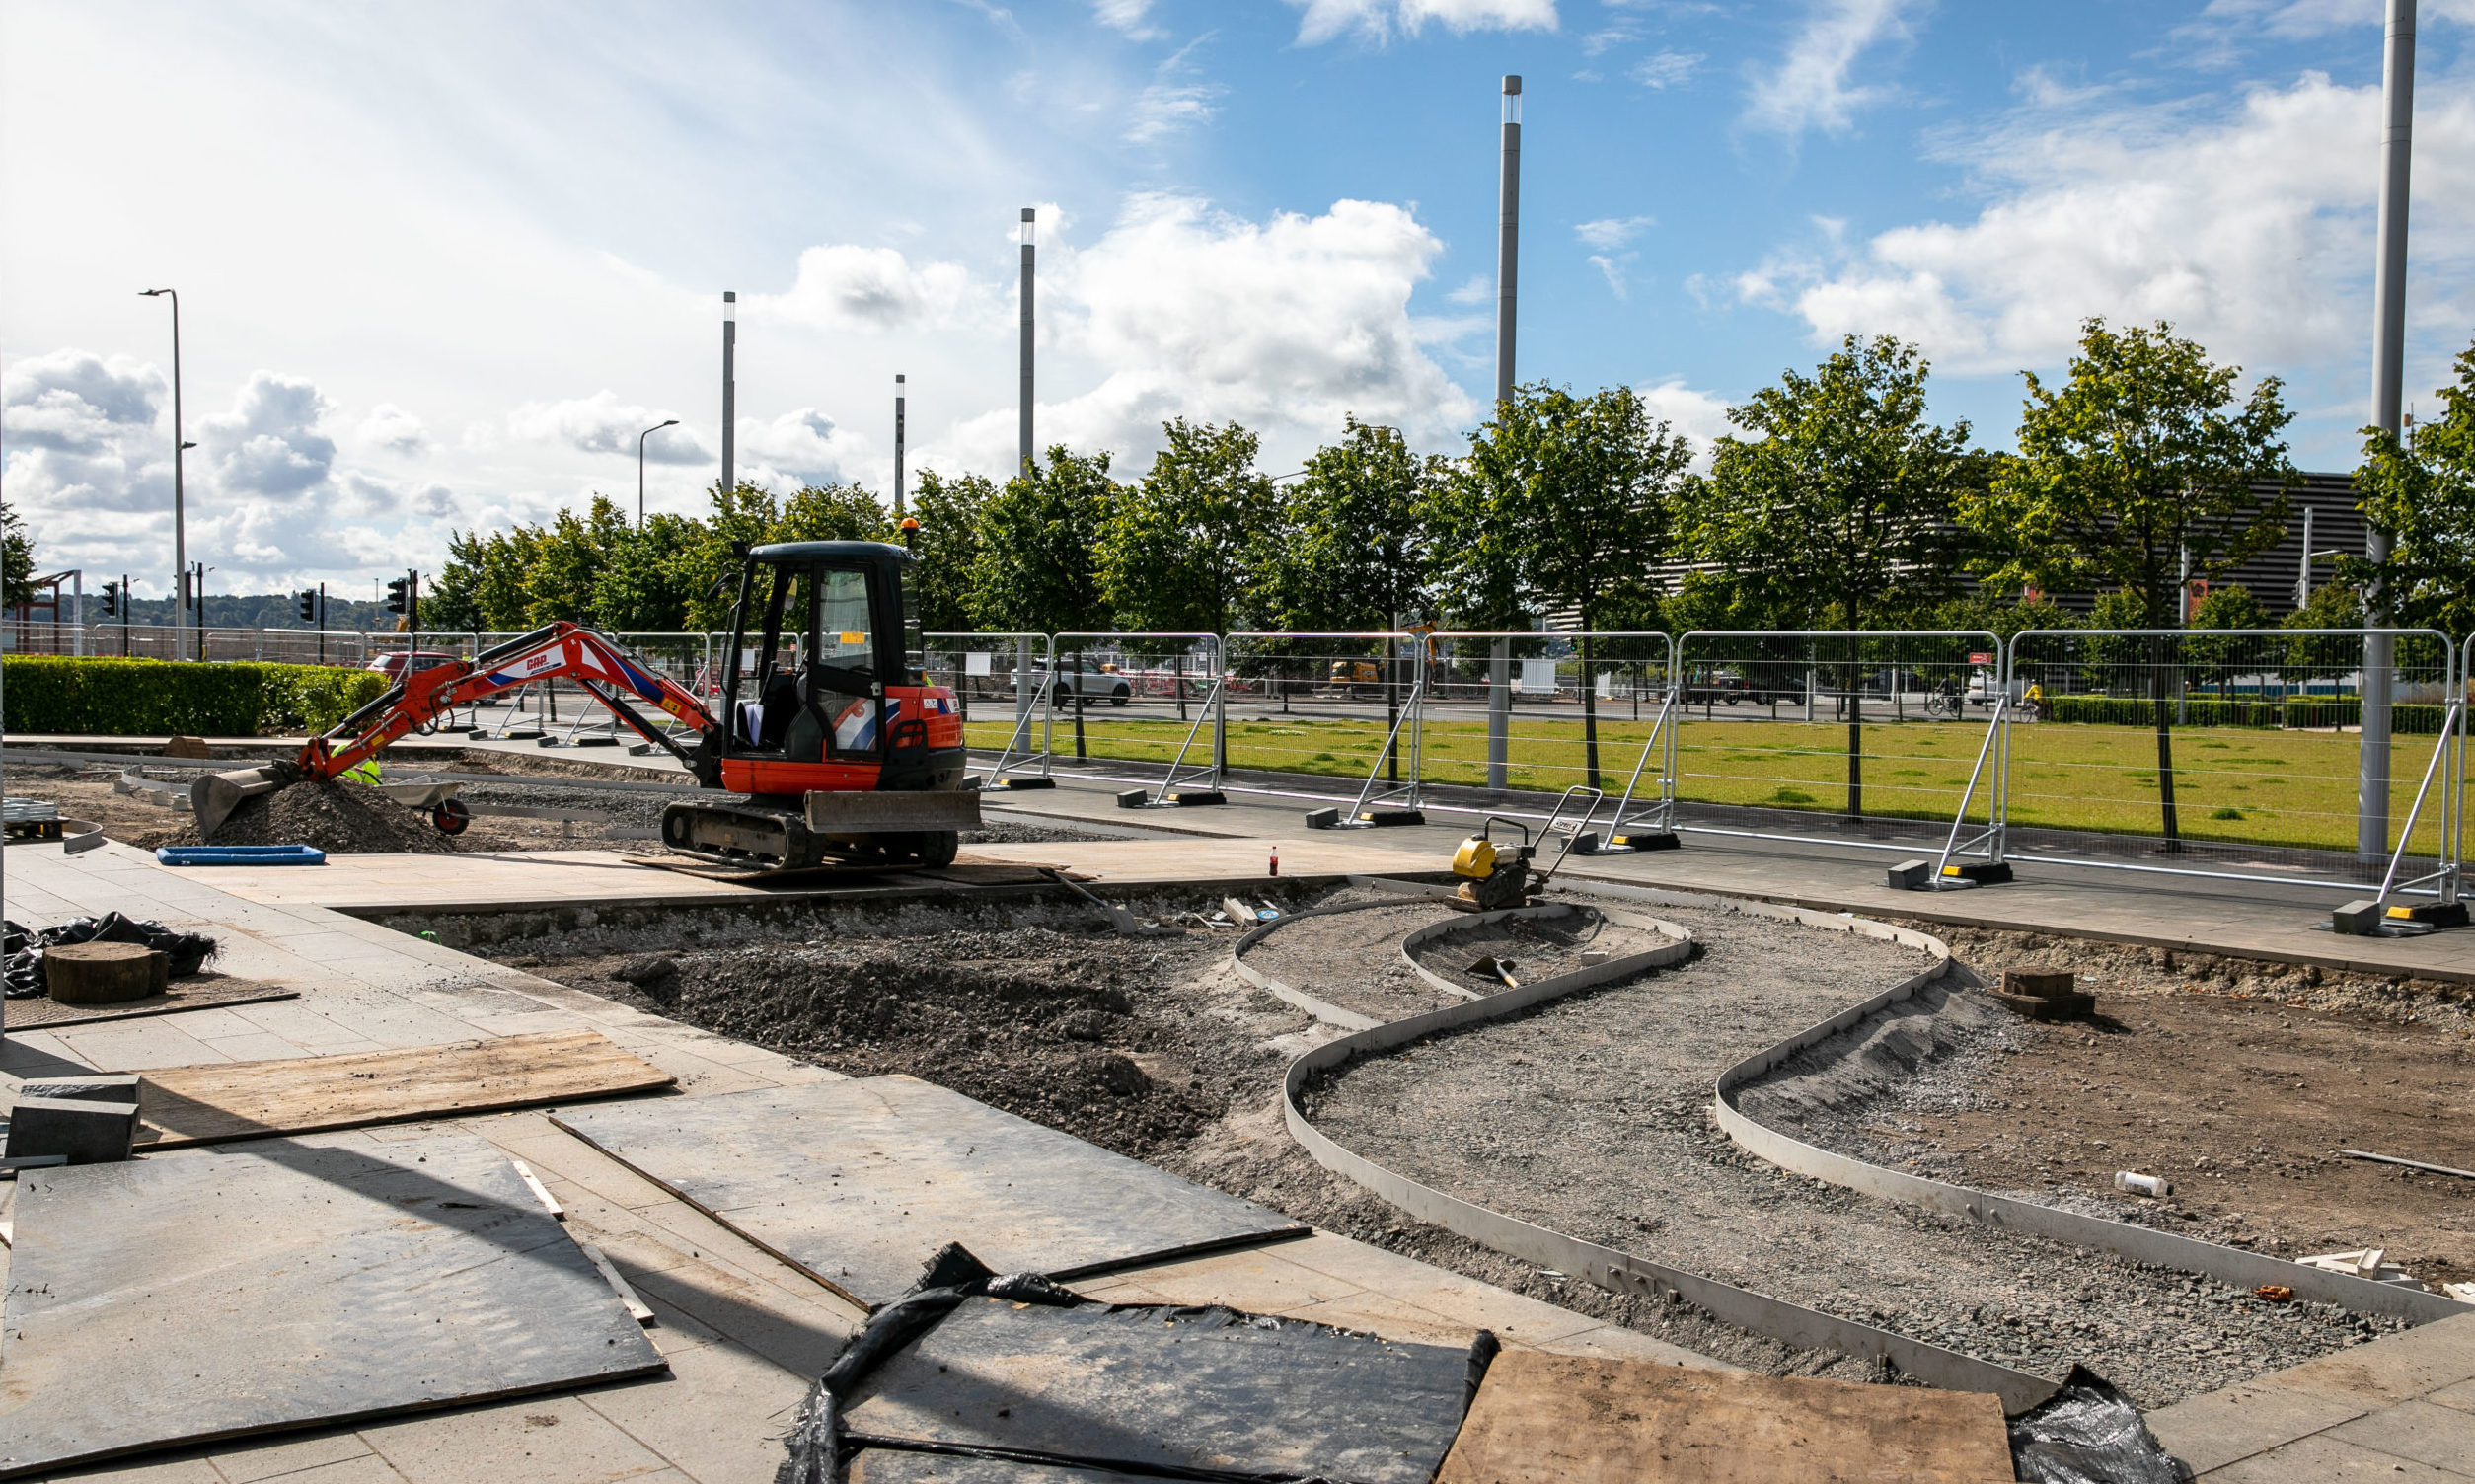 New planted areas being built in Slessor Gardens.